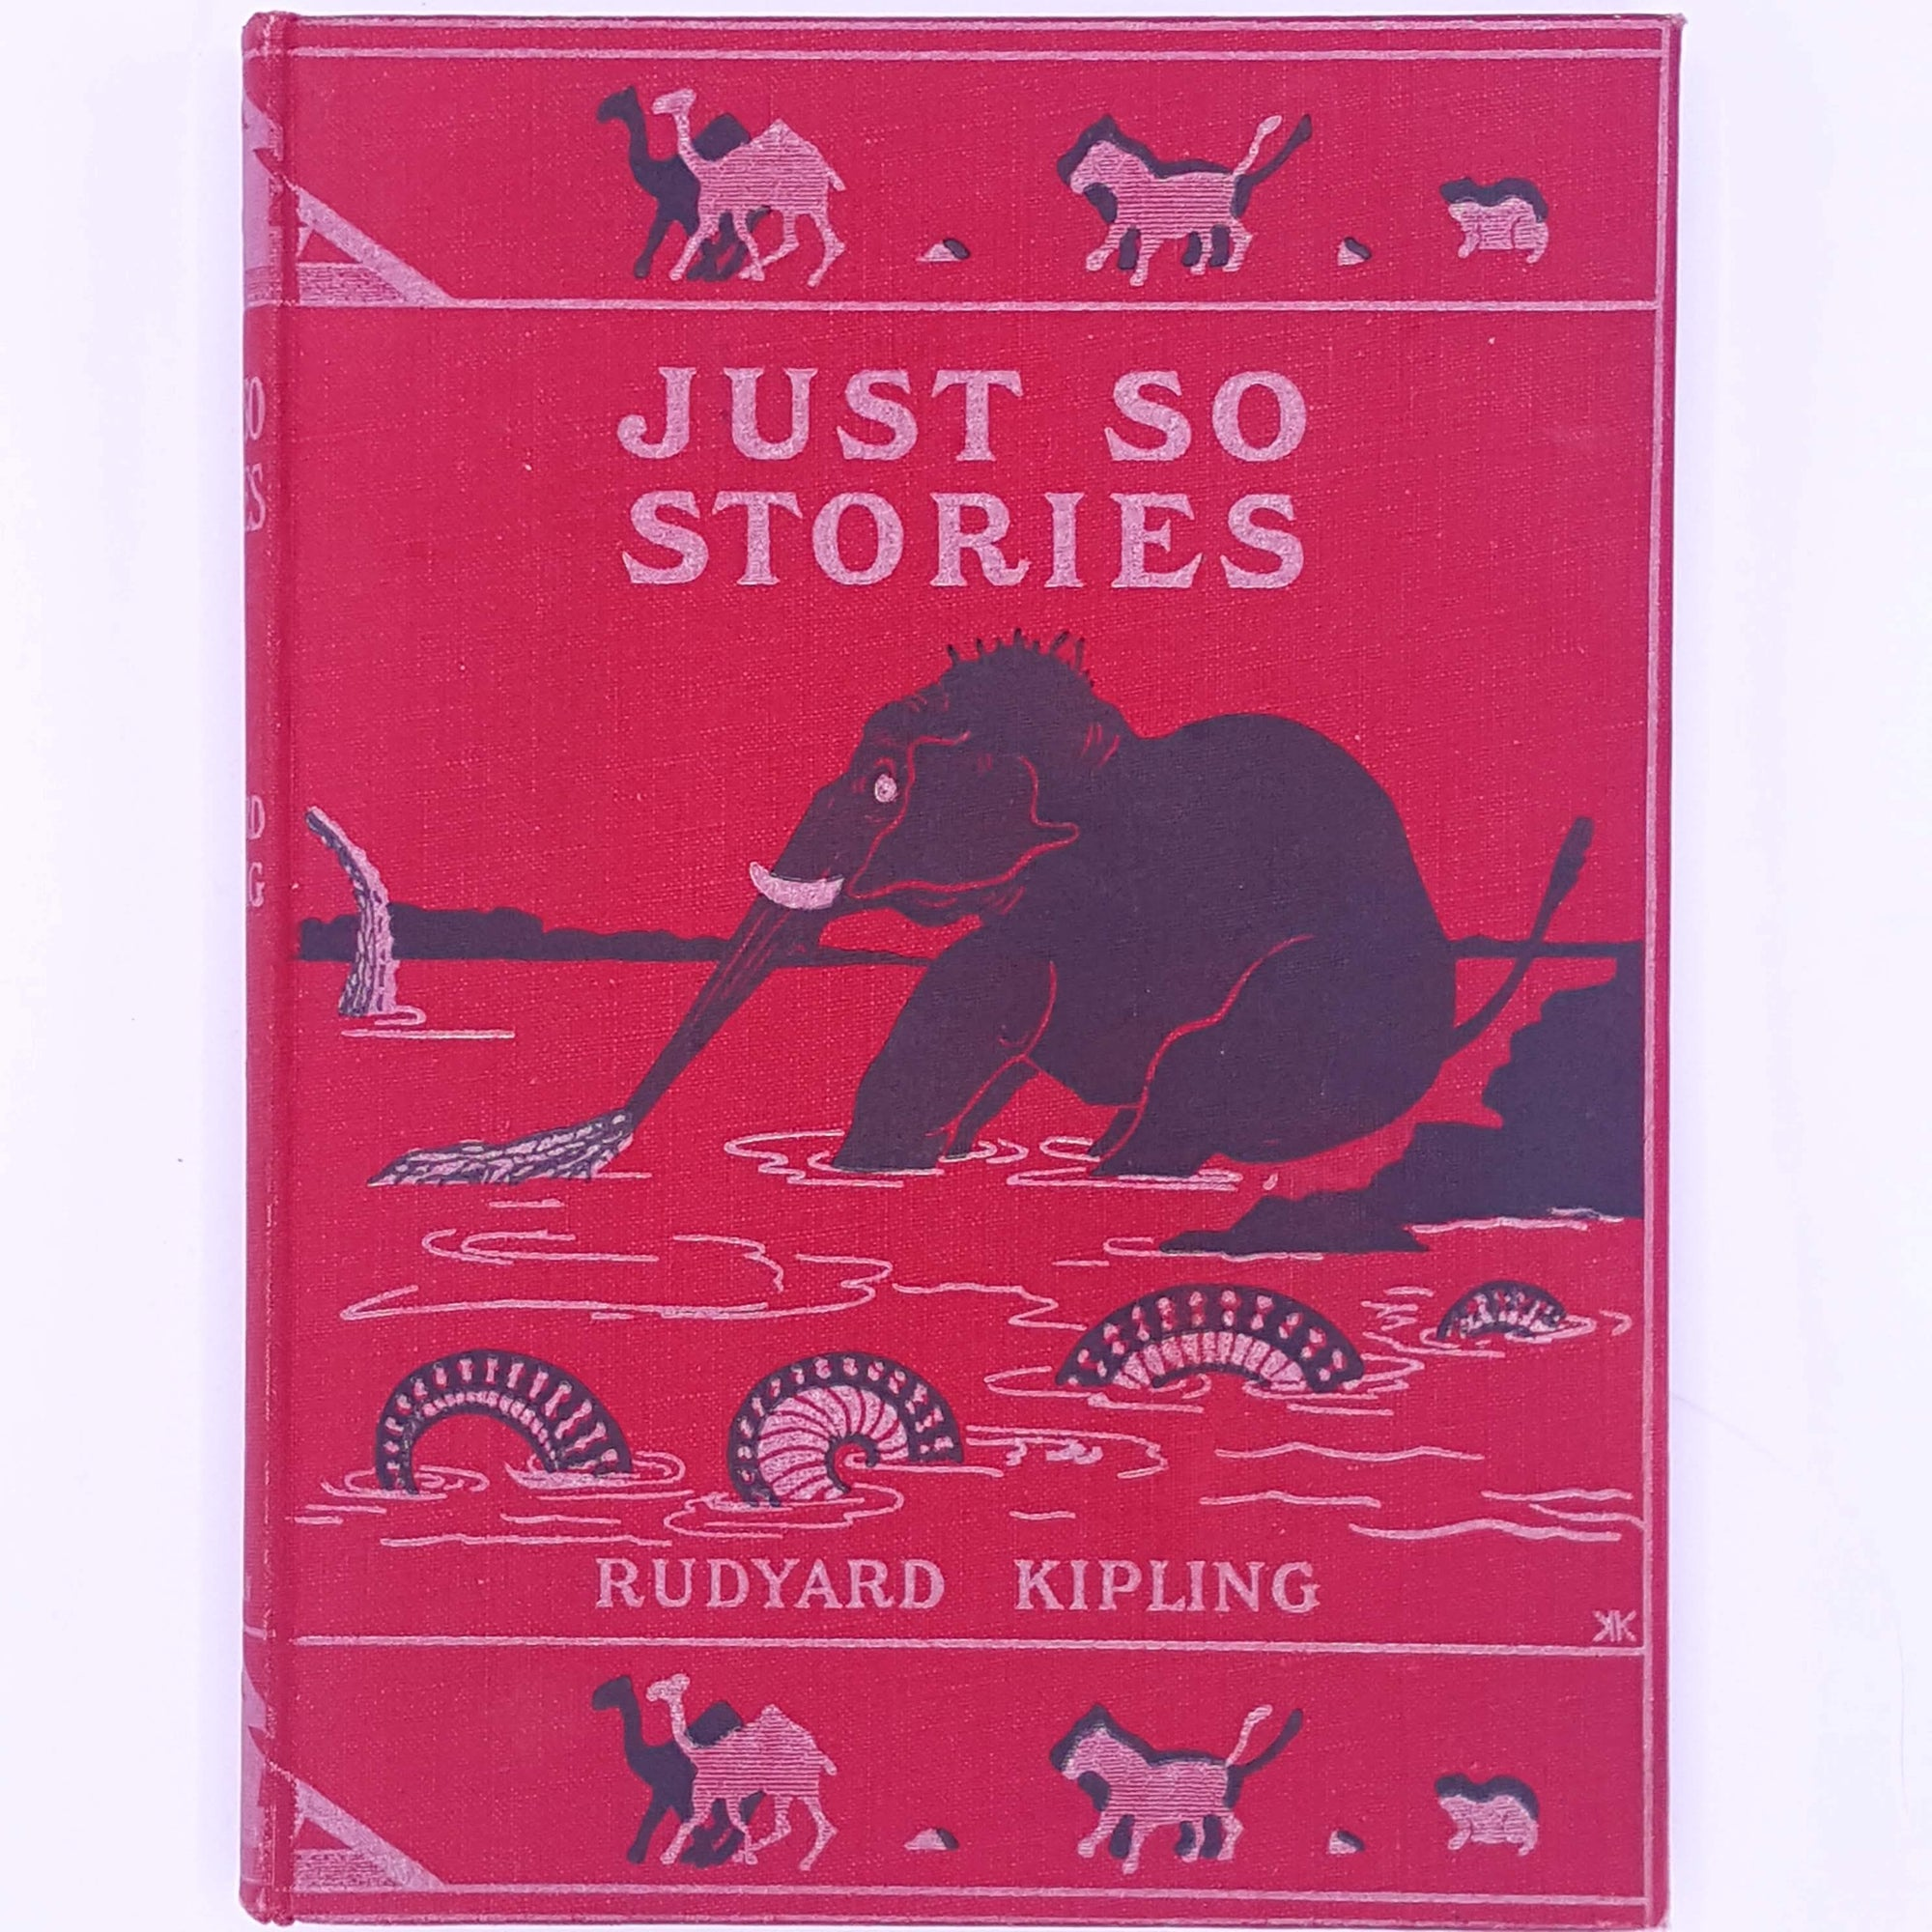 Rudyard Kipling, Just So Stories 1959